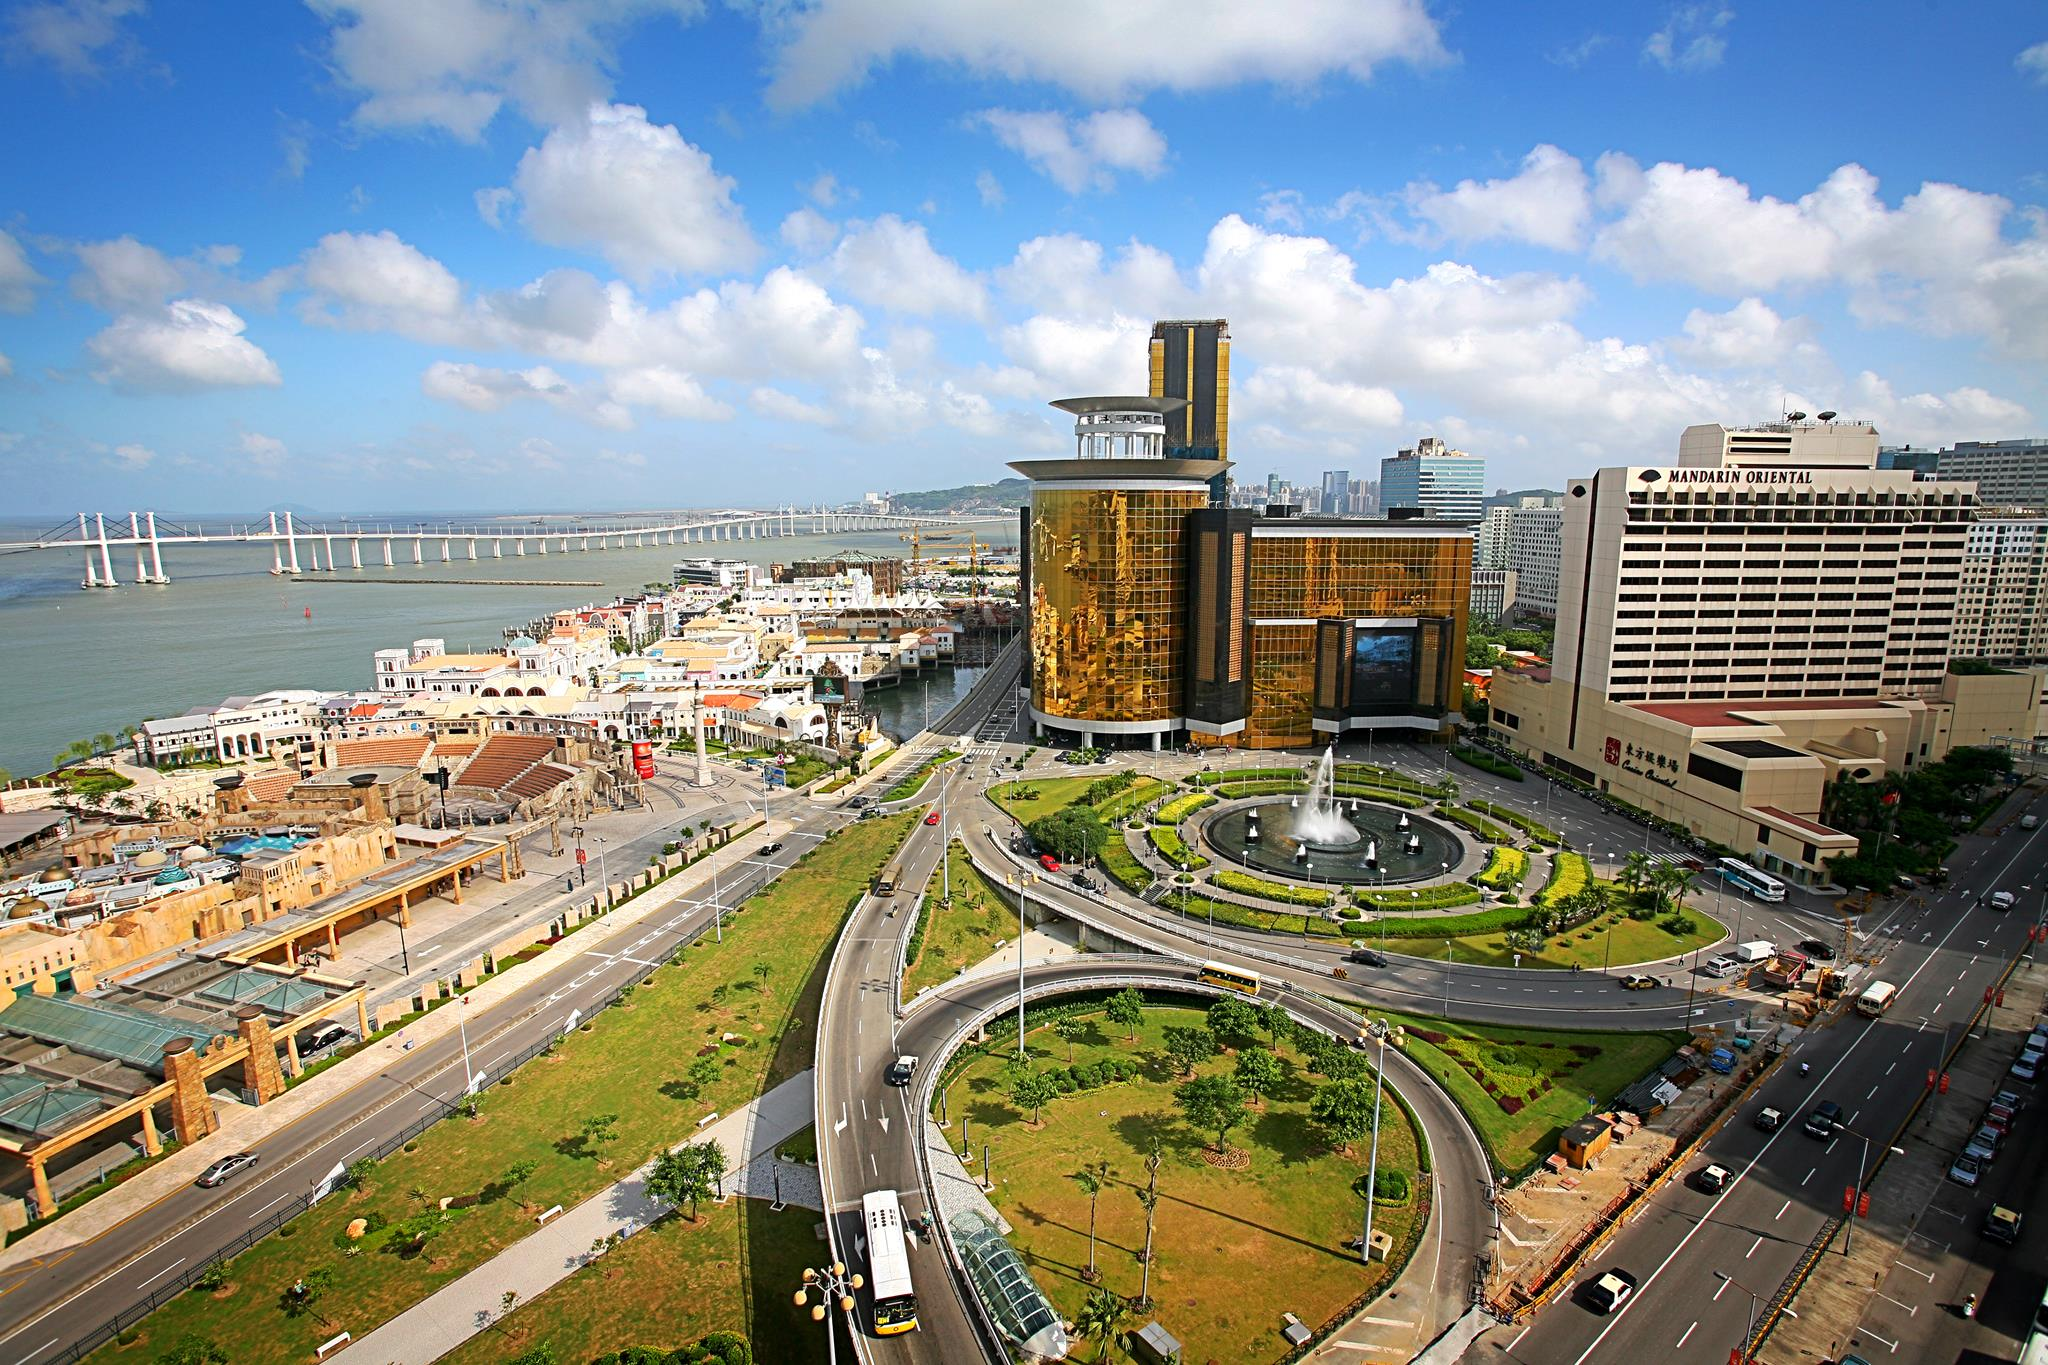 The Sands Macau is another of our suggested casino resorts which may make a good wedding destination.